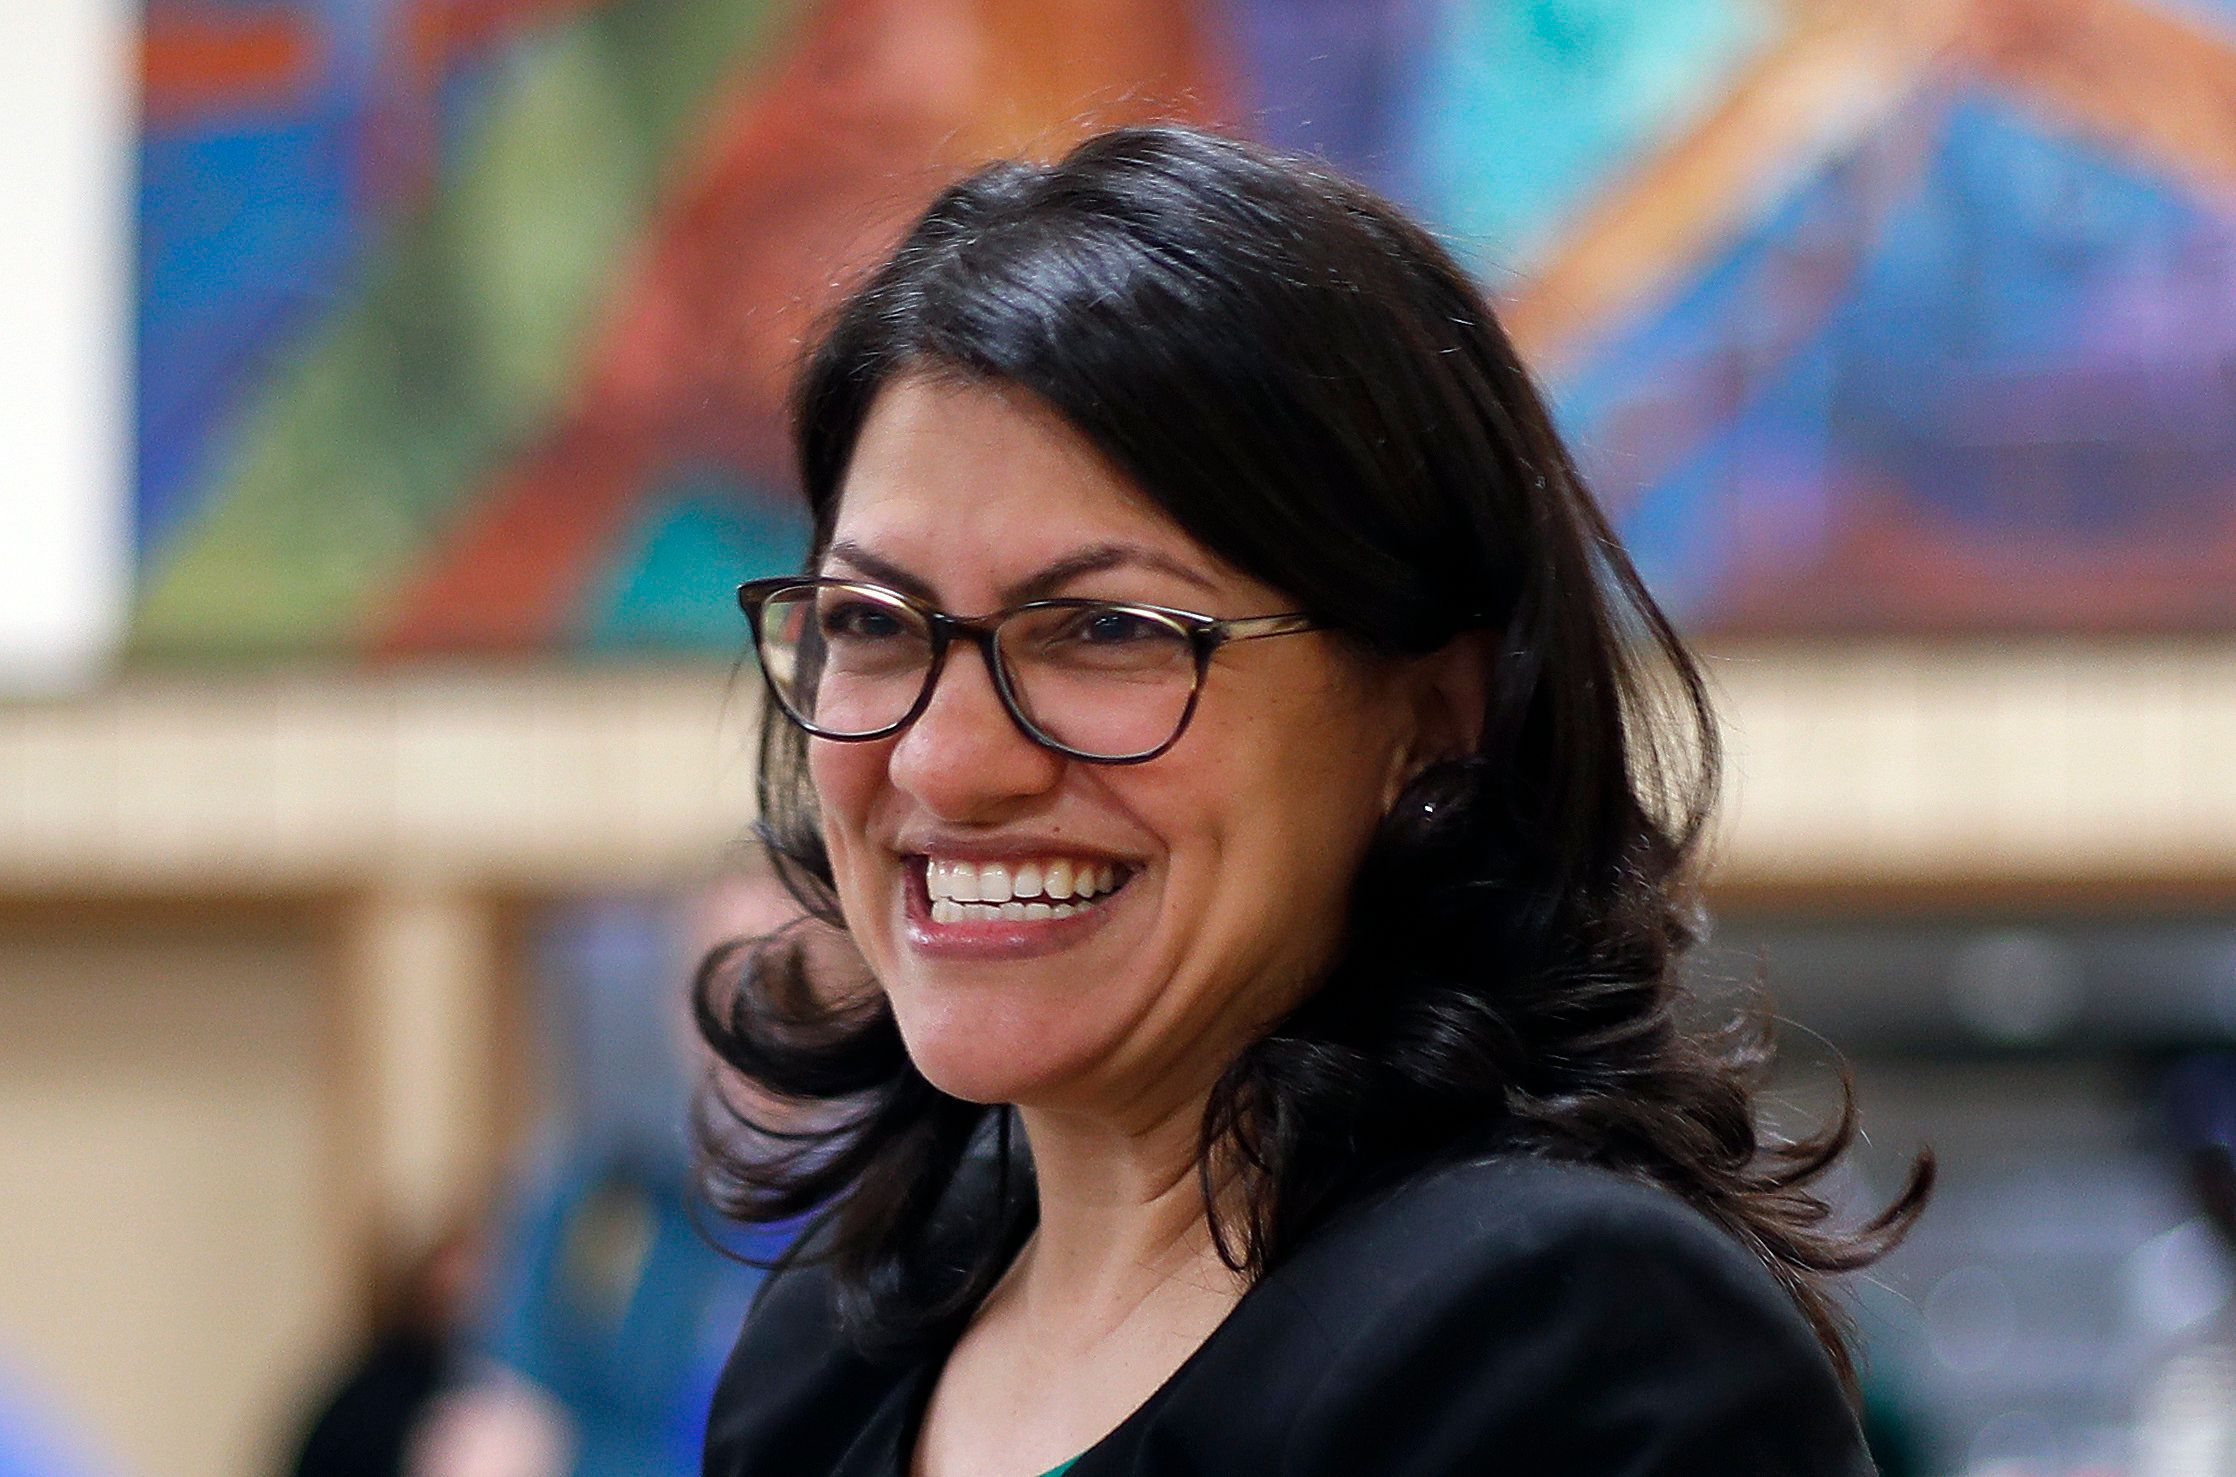 FILE - In this Oct. 26, 2018 file photo, Rashida Tlaib, Democratic candidate for the Michigan's 13th Congressional District, smiles during a rally in Dearborn, Mich. (AP Photo/Paul Sancya, File)